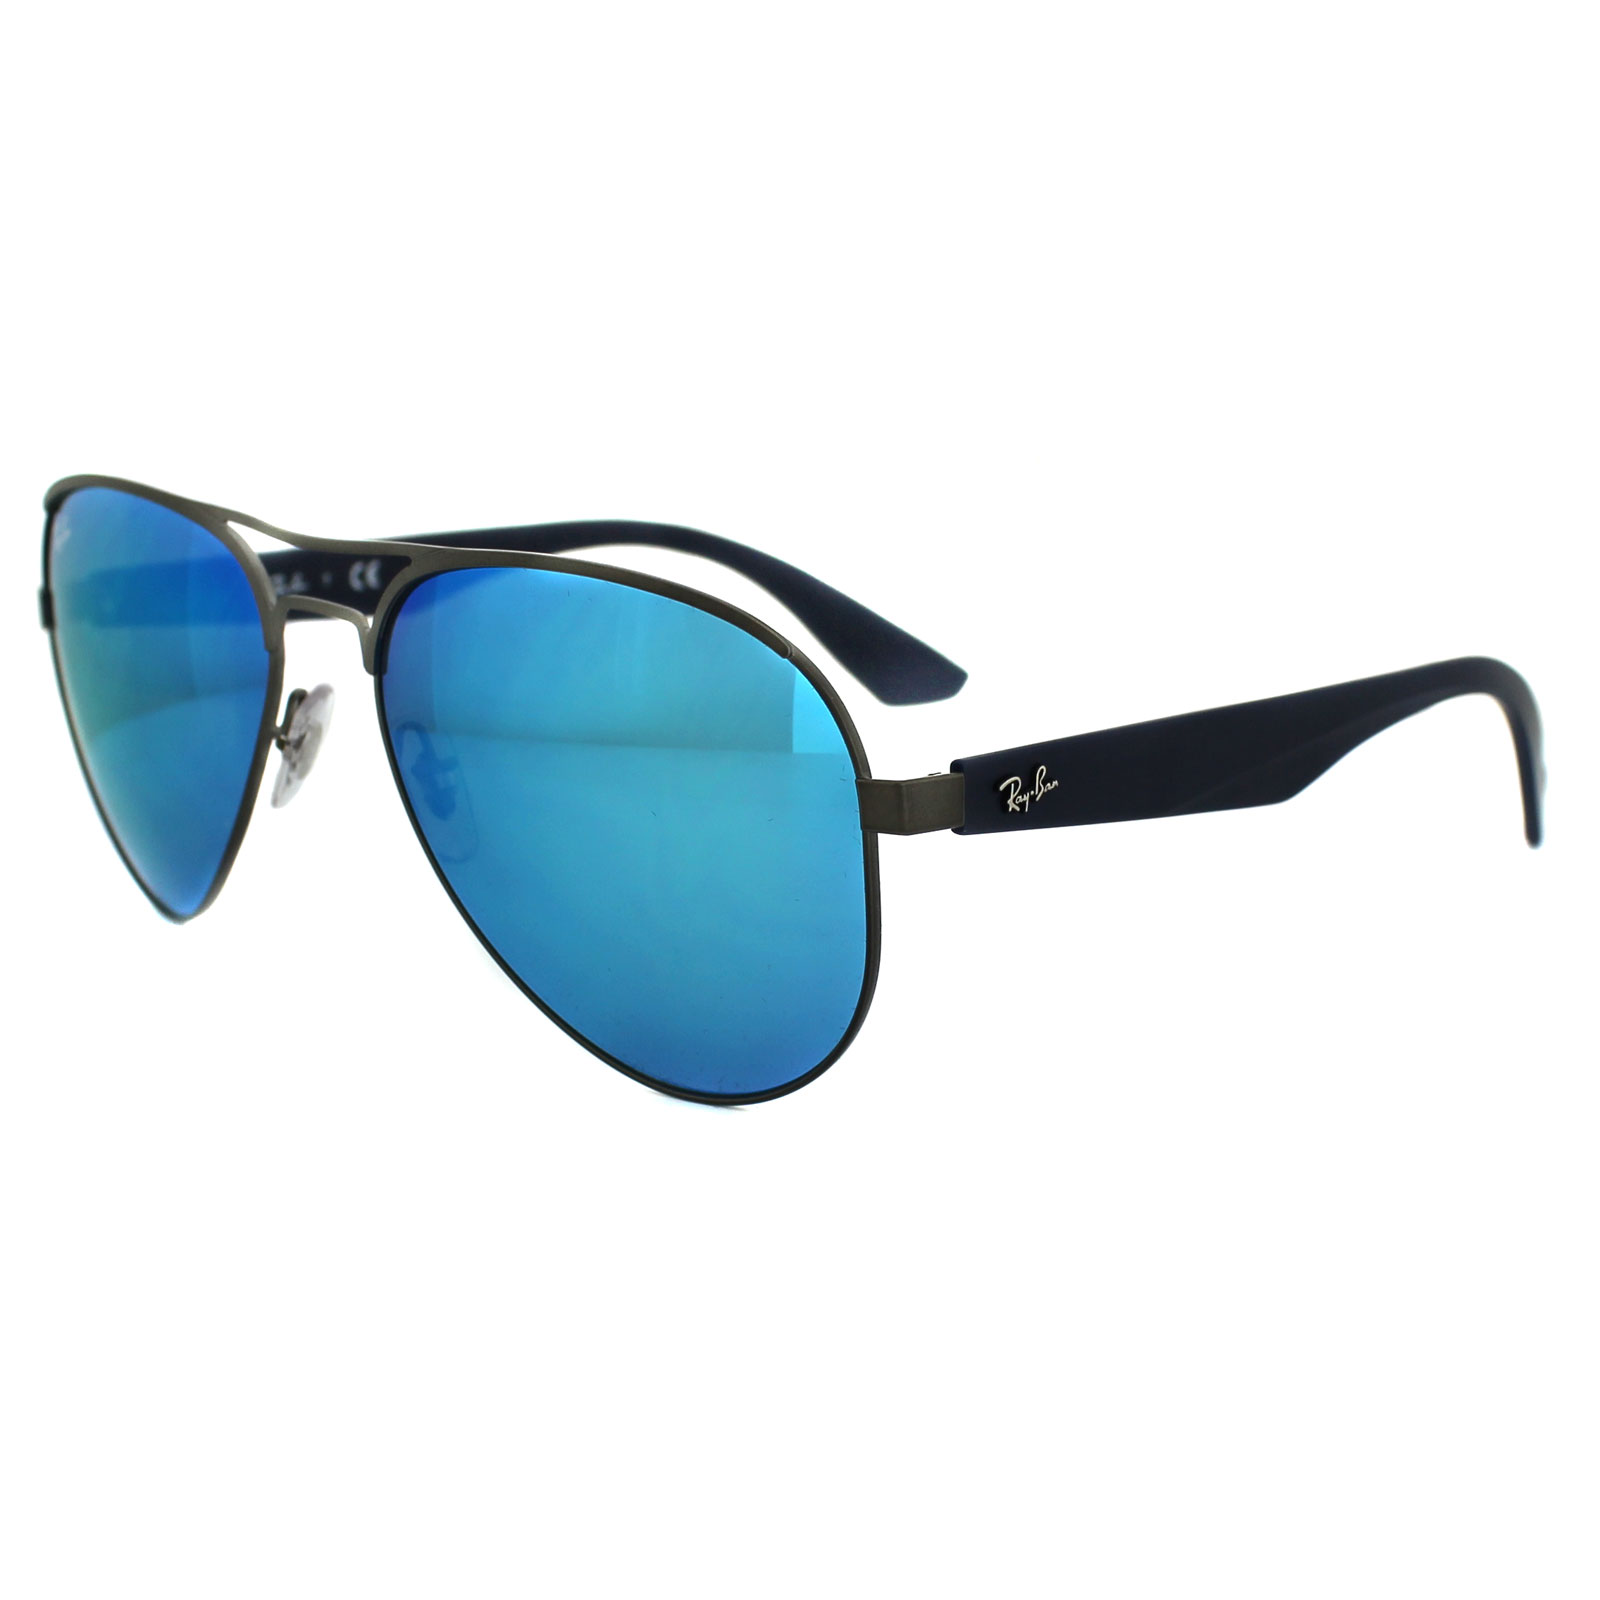 99ef23a97c ... inexpensive sentinel ray ban sunglasses 3523 029 55 gunmetal blue  mirror 2d6e2 12266